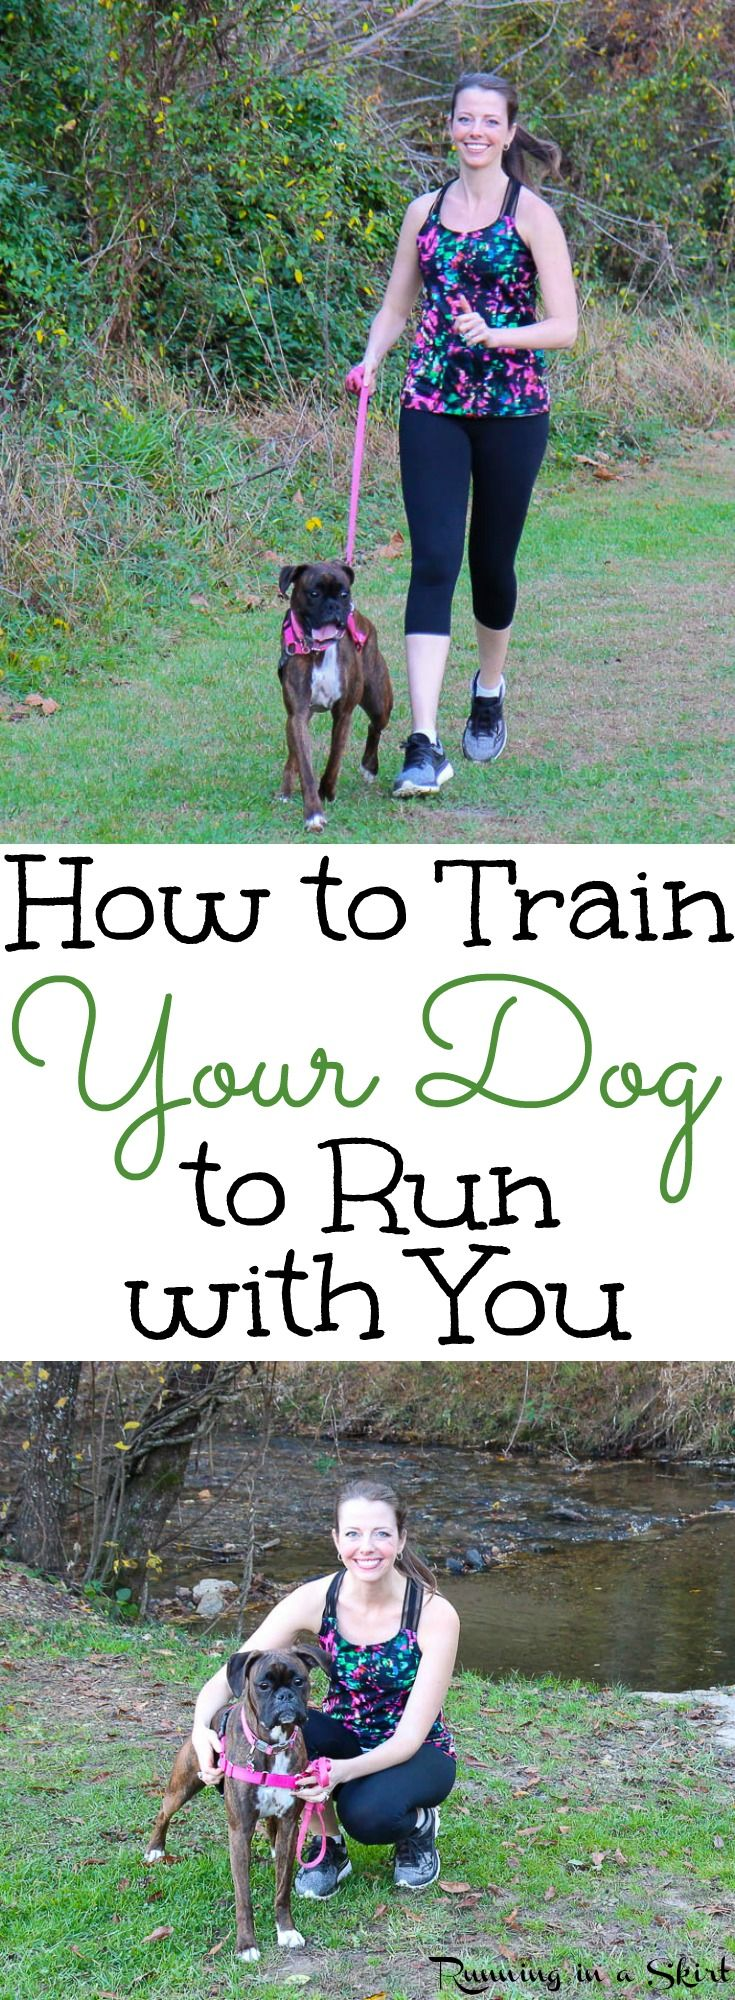 How To Train Your Dog To Run With You Including Fun And Useful